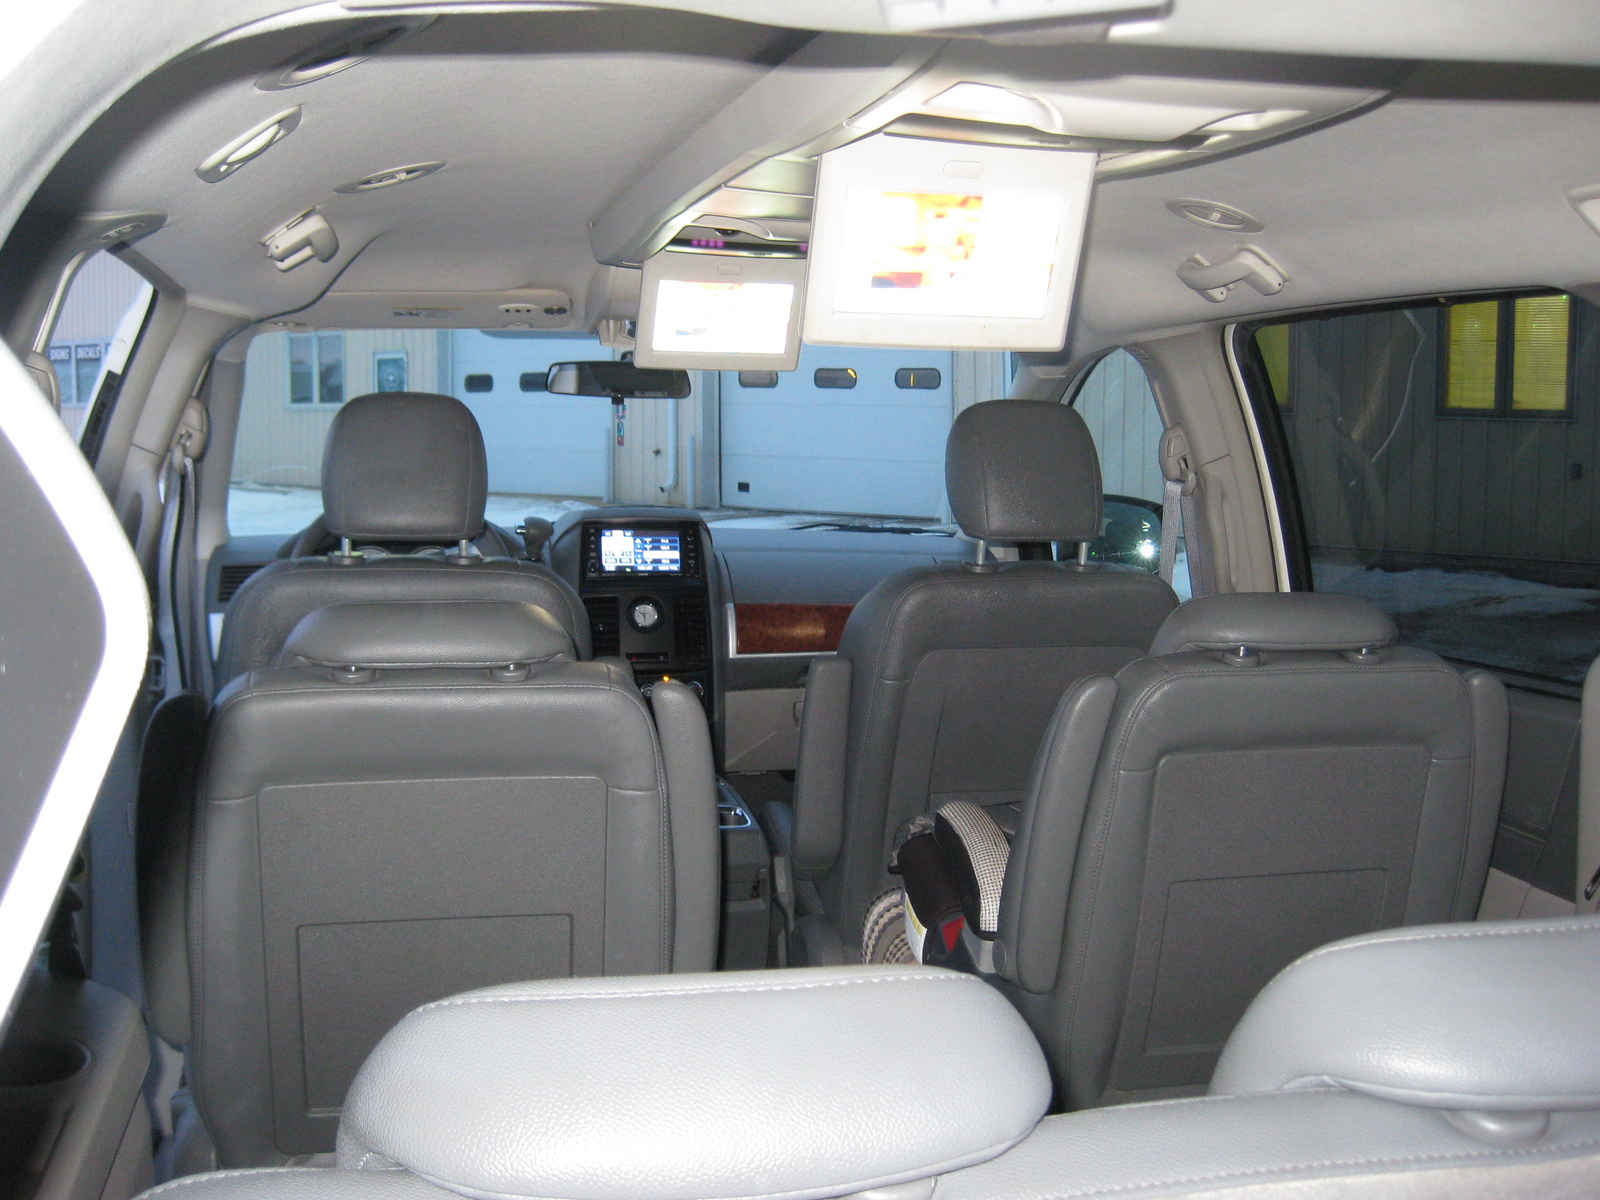 Used Honda Odyssey Near Me >> 2008 Chrysler Town & Country - Pictures - CarGurus